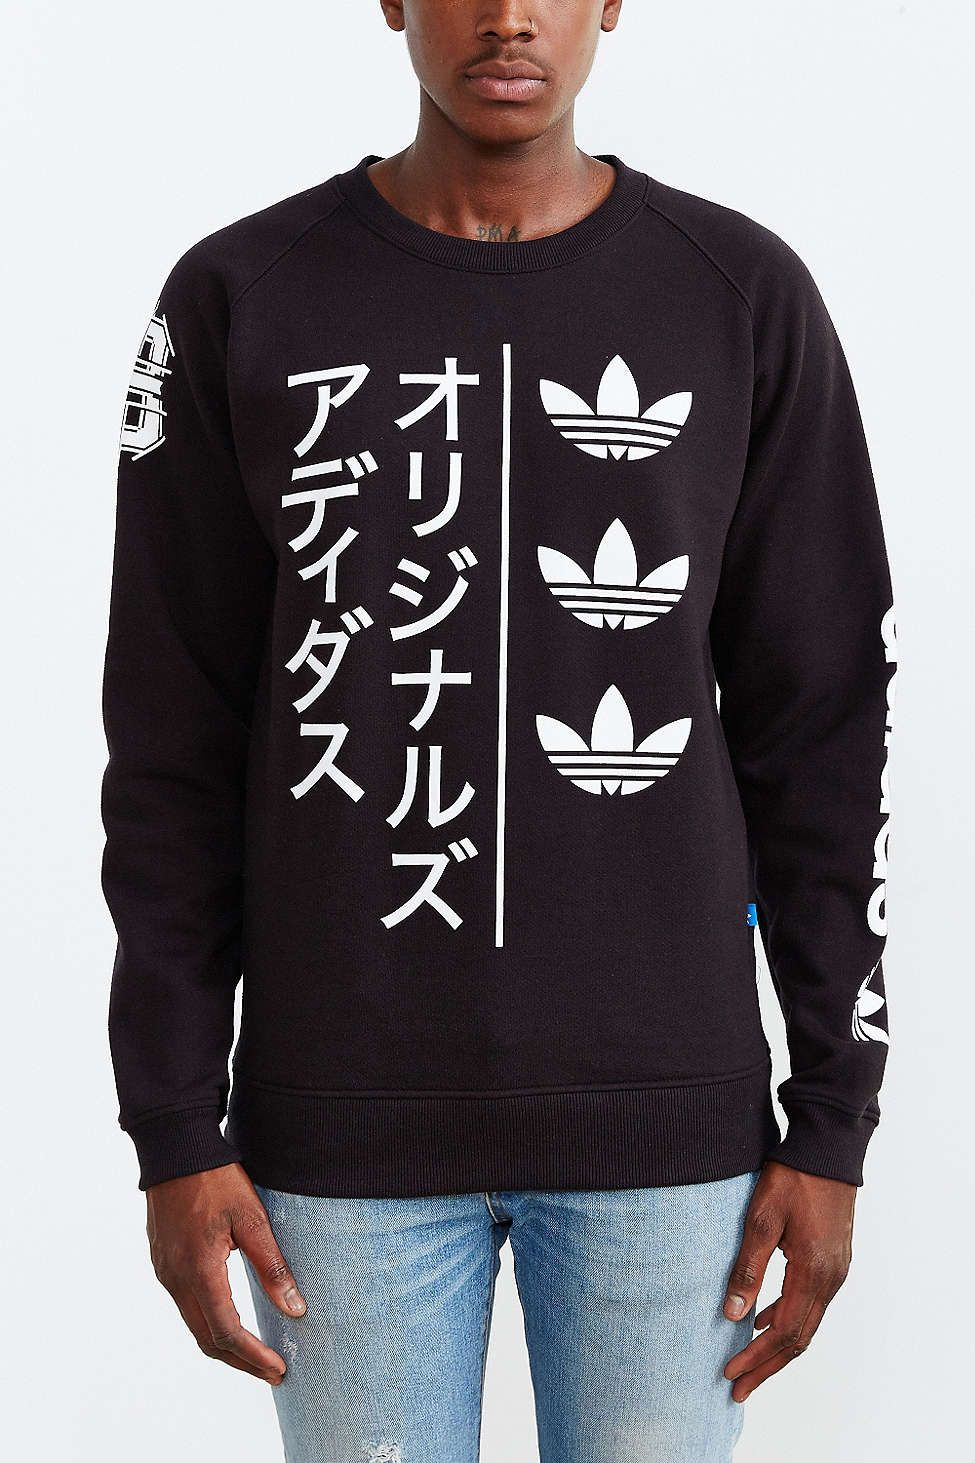 online retailer e0ad2 c7cd8 adidas Originals Tokyo Stripe Long-Sleeve Sweatshirt